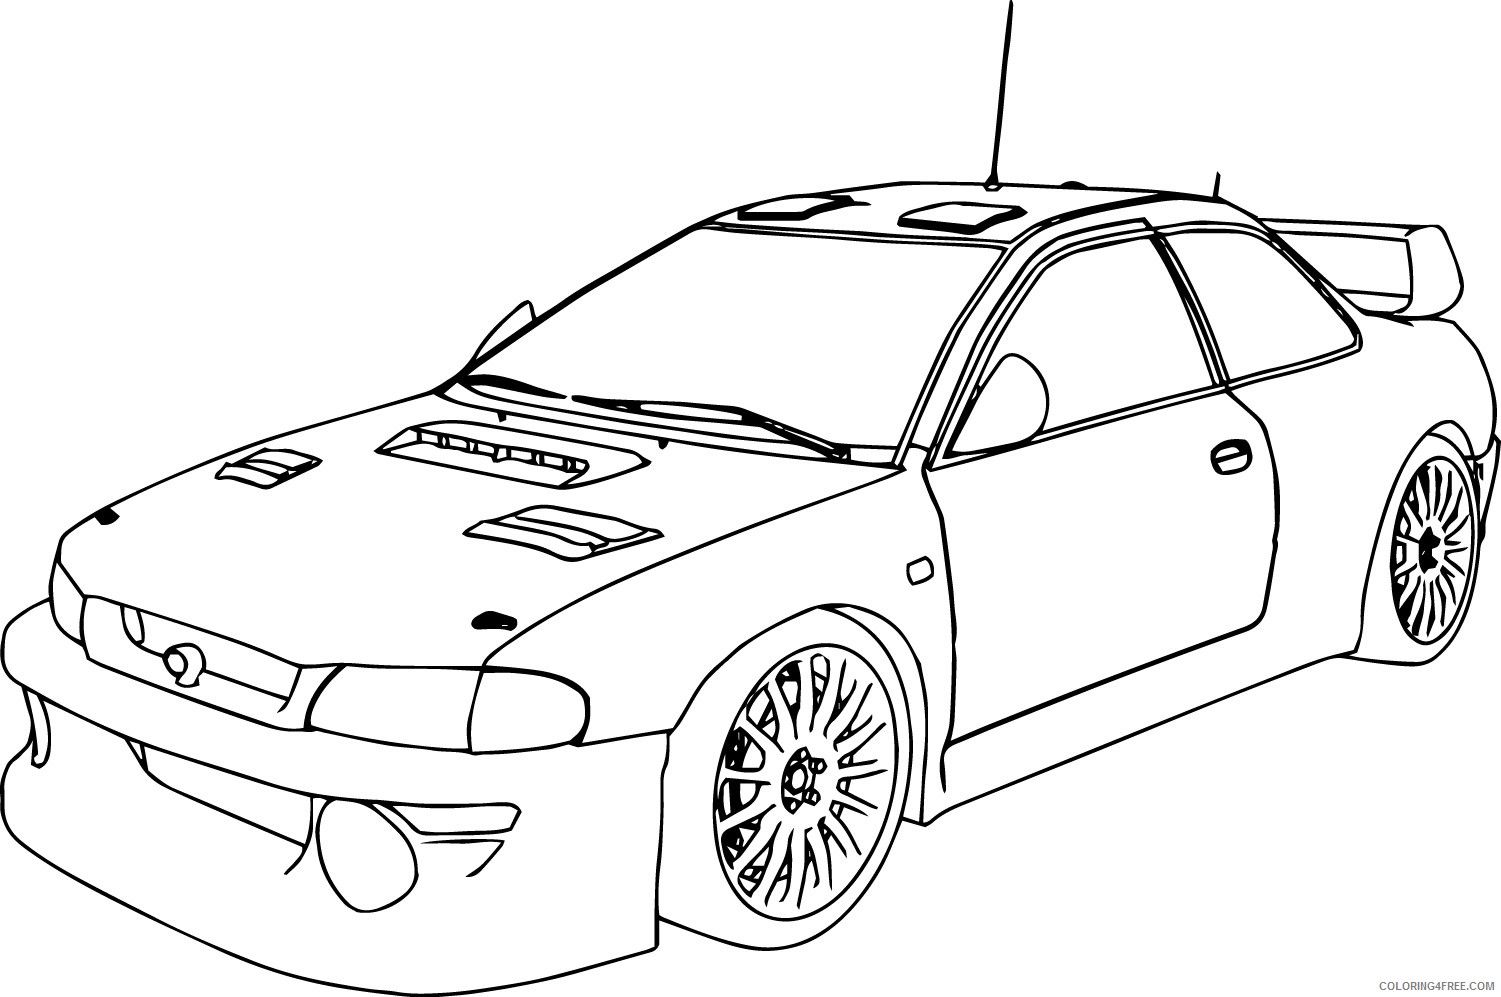 nascar coloring pages nascar coloring pages to download and print for free coloring pages nascar